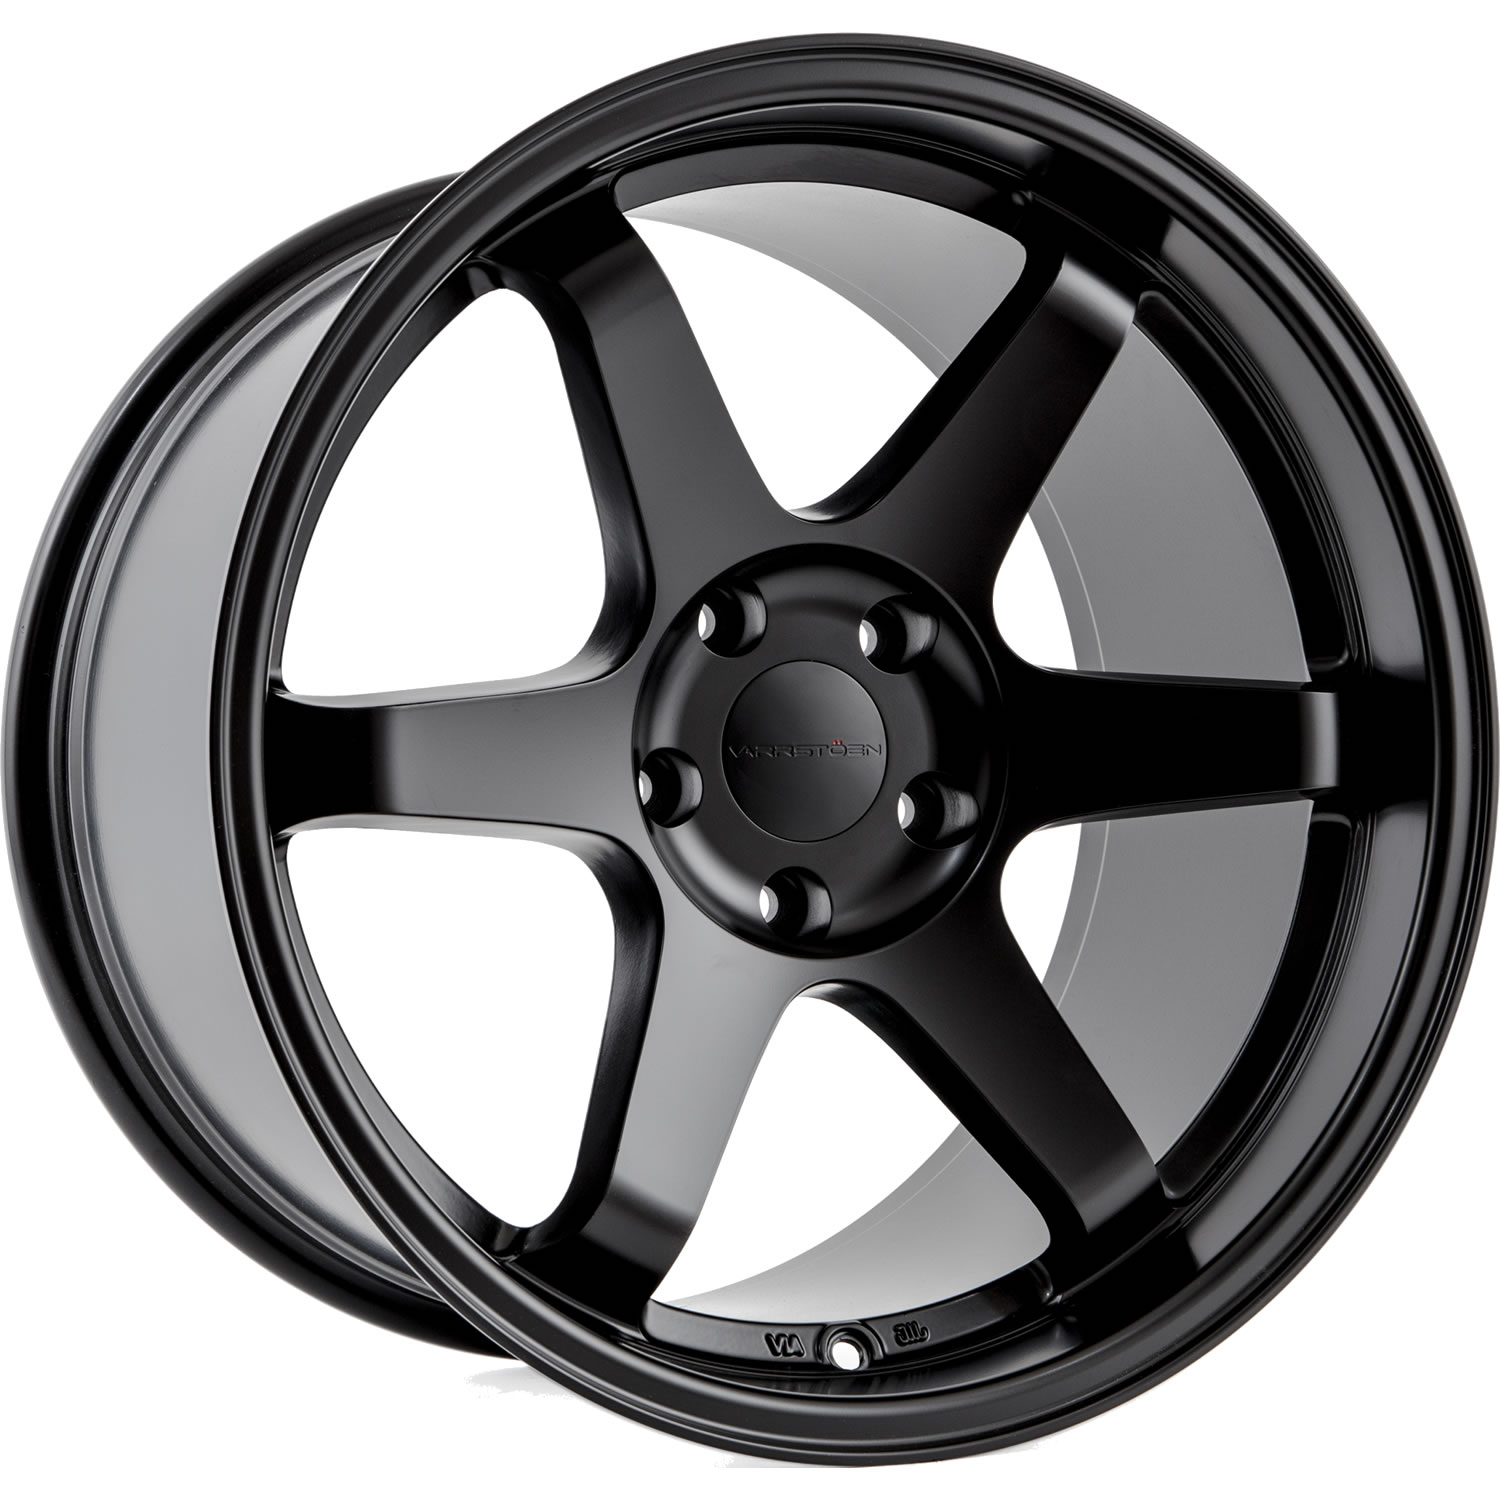 Varrstoen Es2 18x95 30 Custom Wheels